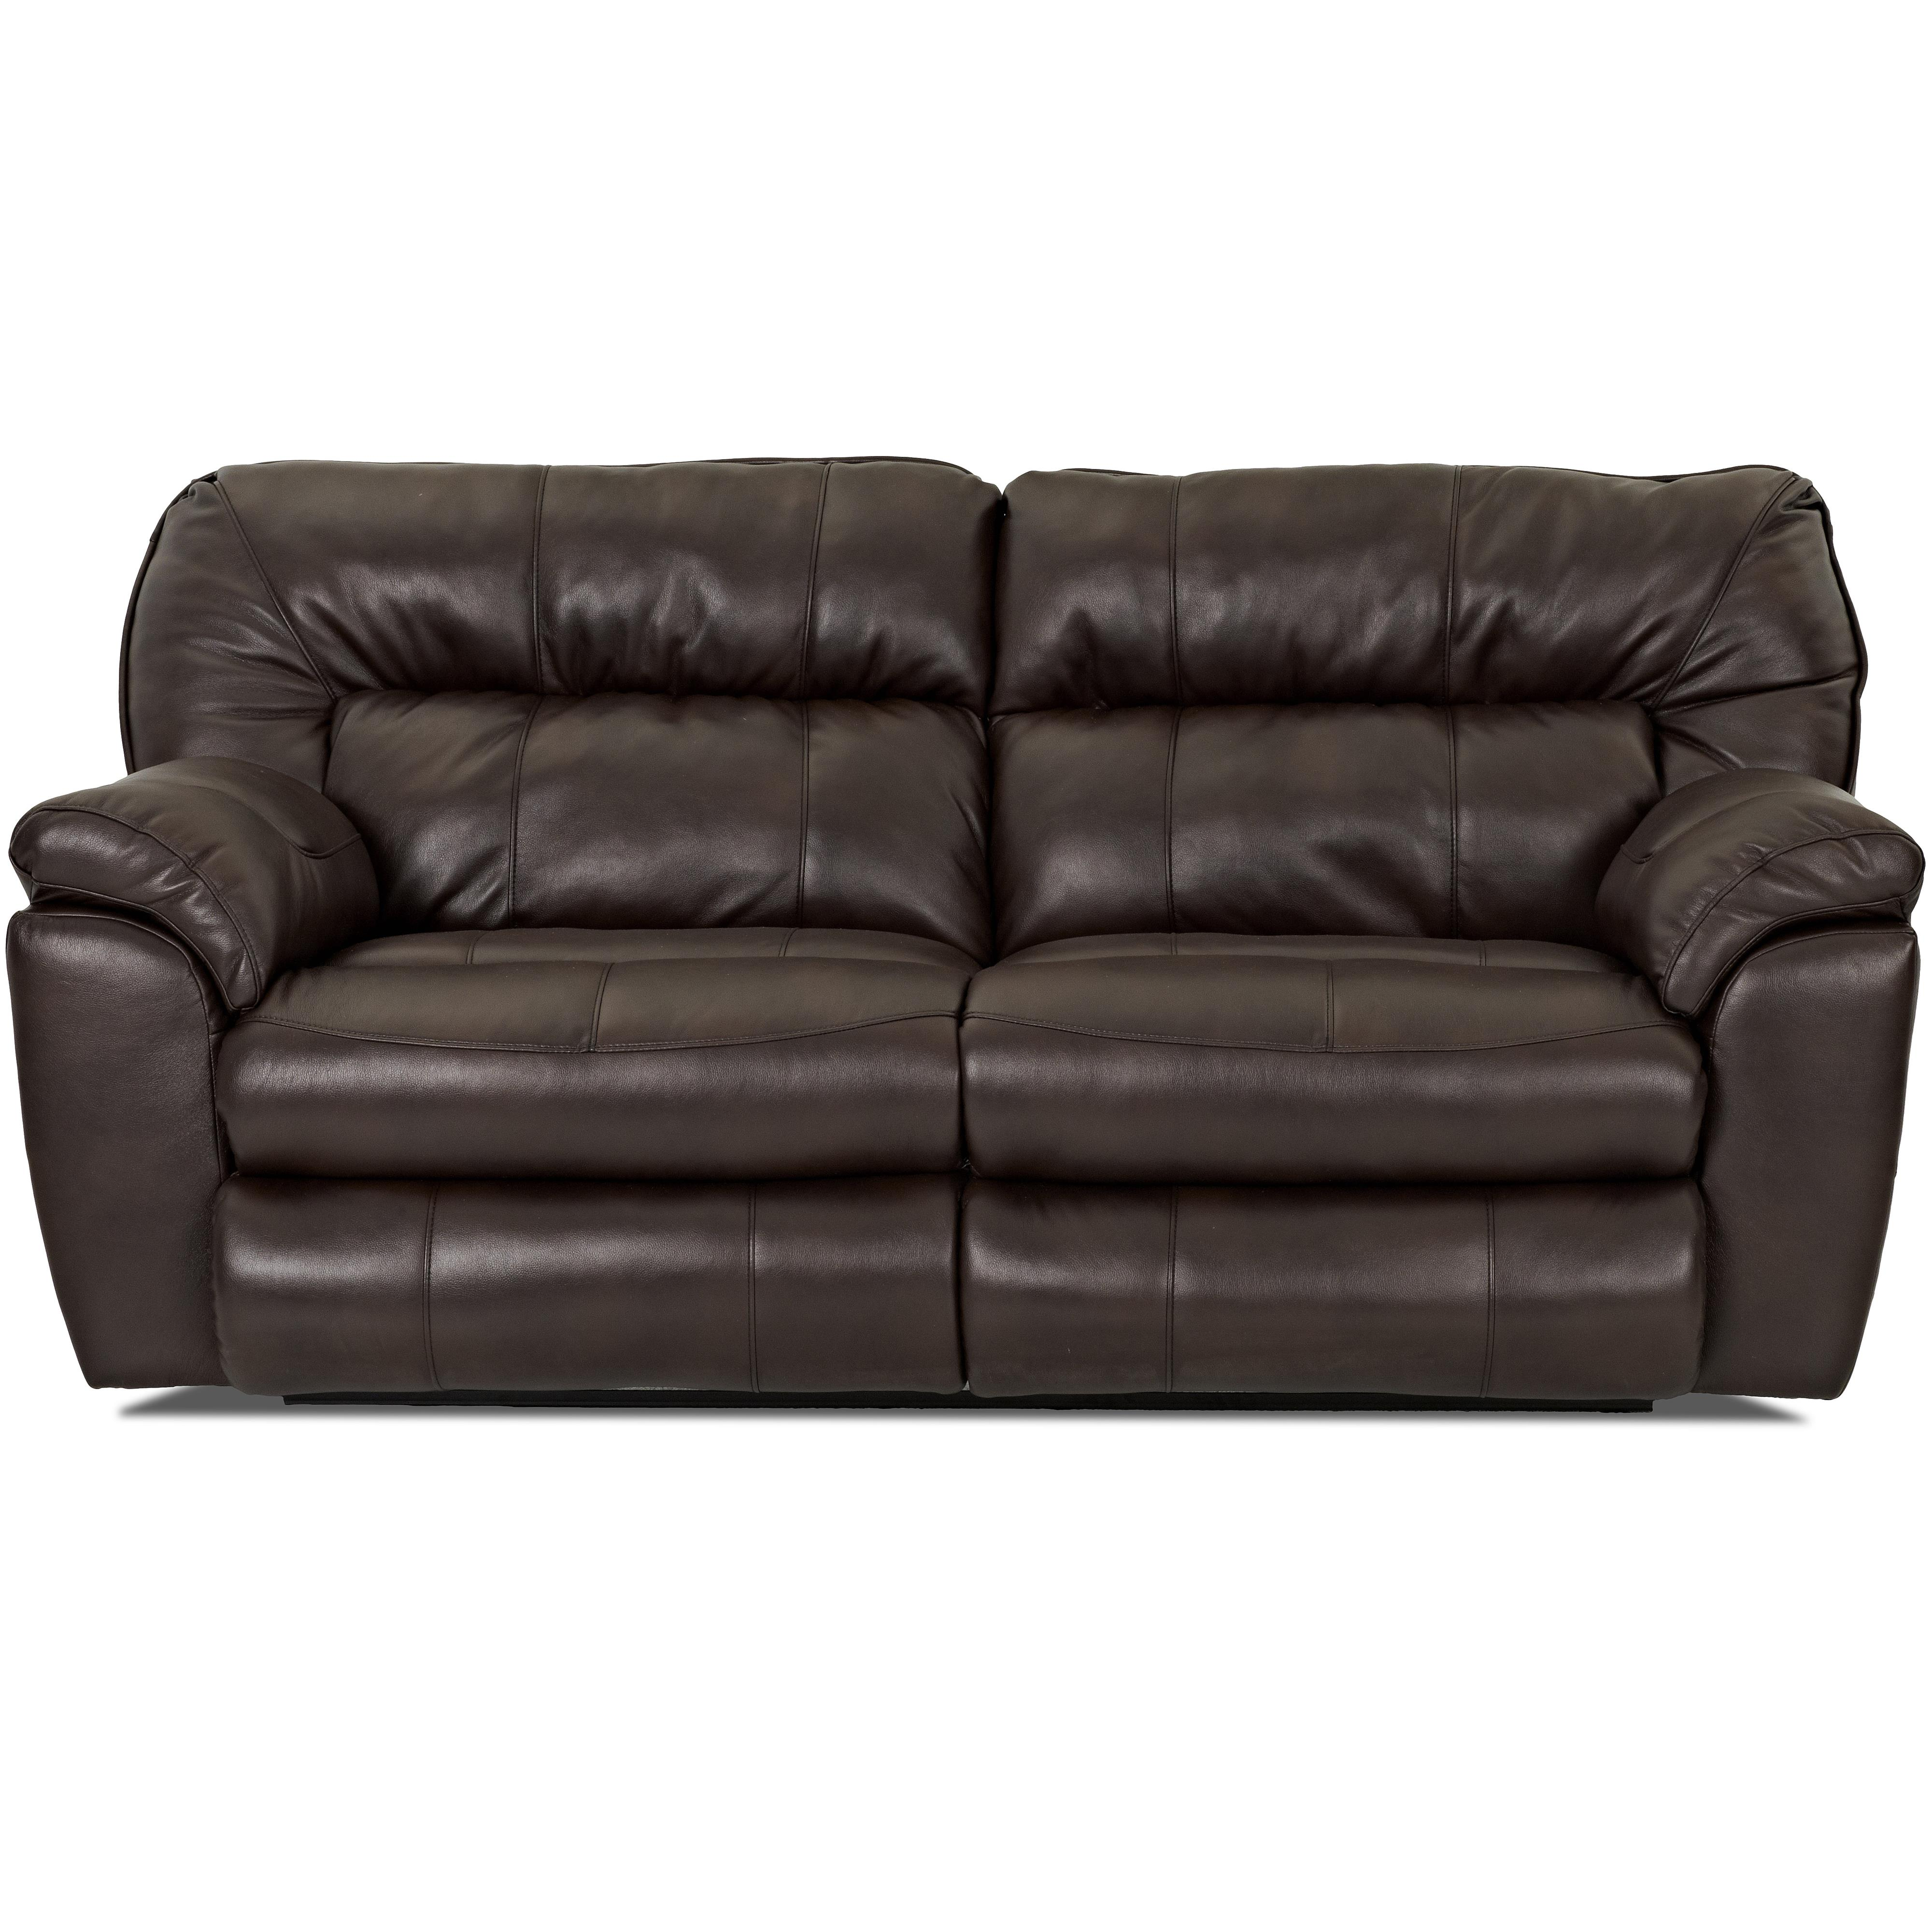 Casual Reclining Love Seat With Pillow Top Arms By Klaussner  ~ Leather Sofa Pillow Top Arms